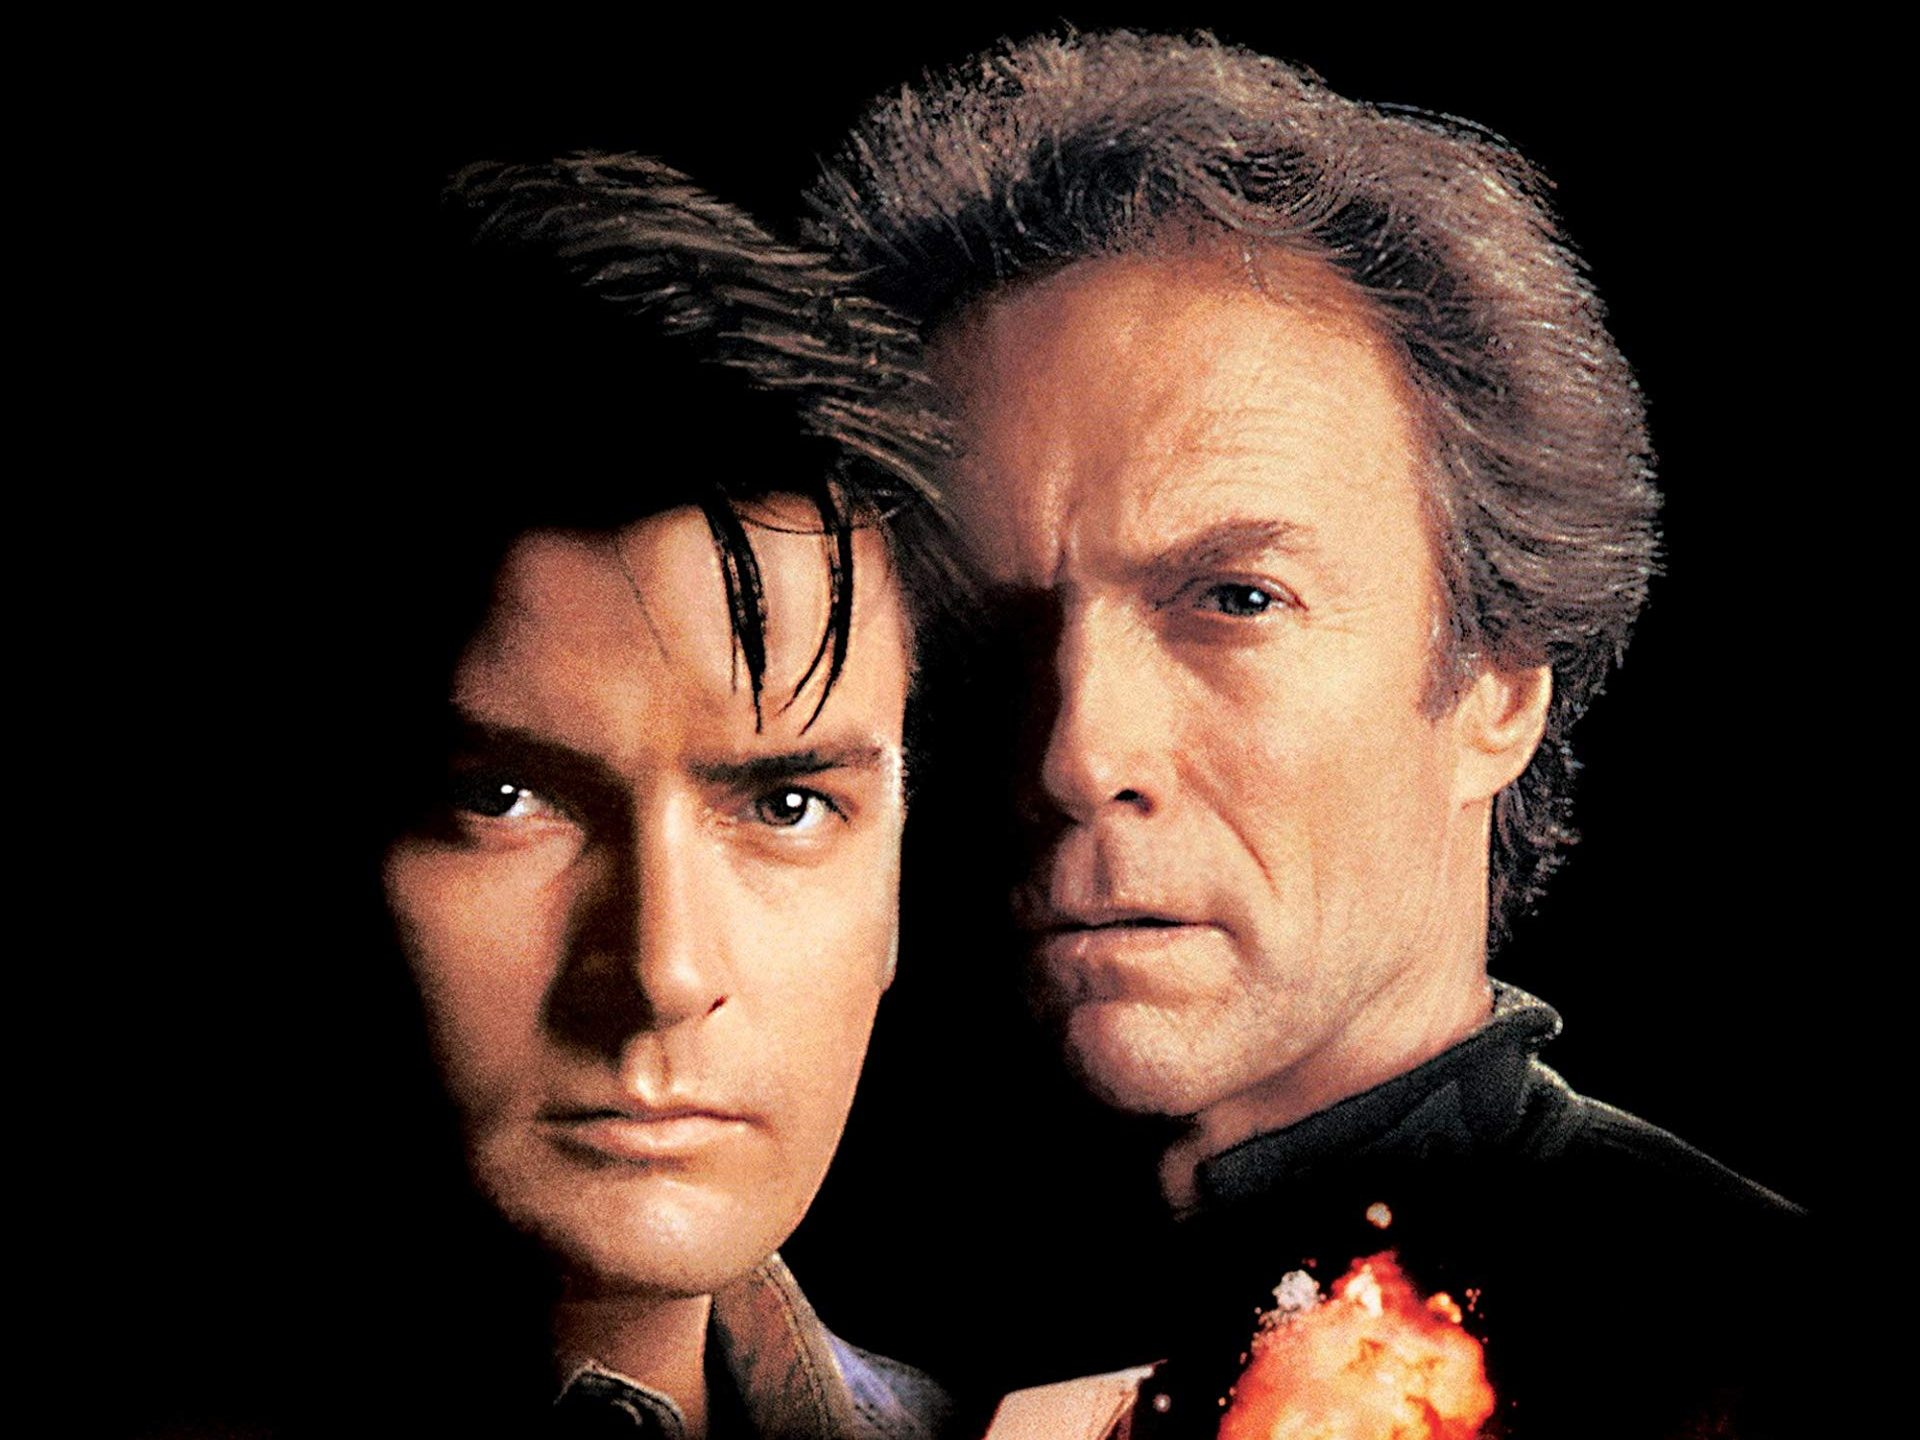 81KsZctrZSL. RI e1608726822889 Clint Eastwood: 5 Of His Best Movies, And 5 Of His Worst